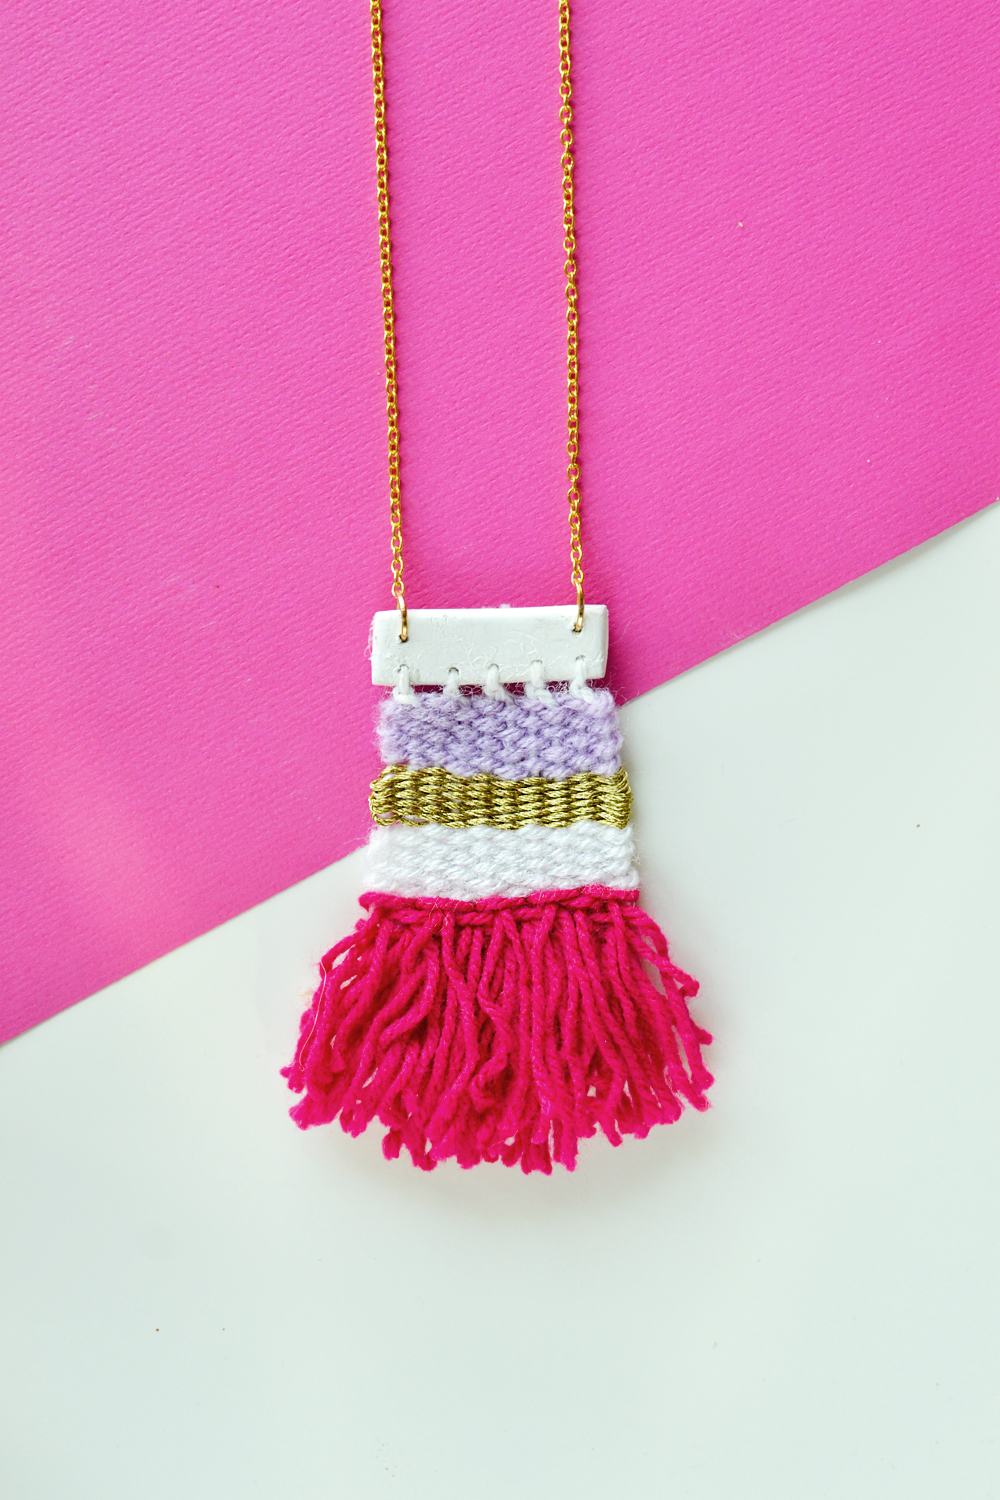 Weaving is time-consuming and not everyone's cup of tea. But it doesn't hurt to create a mini woven necklace and proudly wear it, does it?